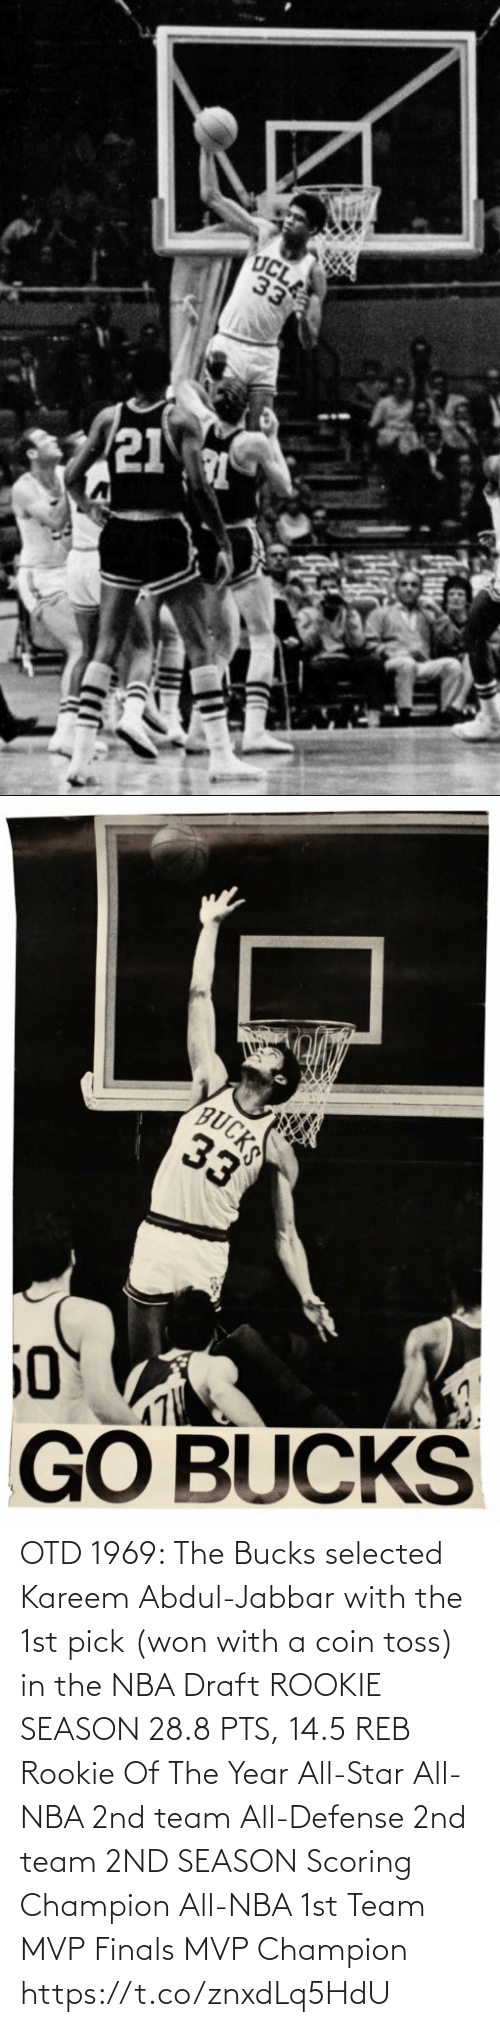 1St: OTD 1969: The Bucks selected Kareem Abdul-Jabbar with the 1st pick (won with a coin toss) in the NBA Draft   ROOKIE SEASON 28.8 PTS, 14.5 REB Rookie Of The Year All-Star All-NBA 2nd team All-Defense 2nd team  2ND SEASON Scoring Champion All-NBA 1st Team MVP Finals MVP Champion https://t.co/znxdLq5HdU